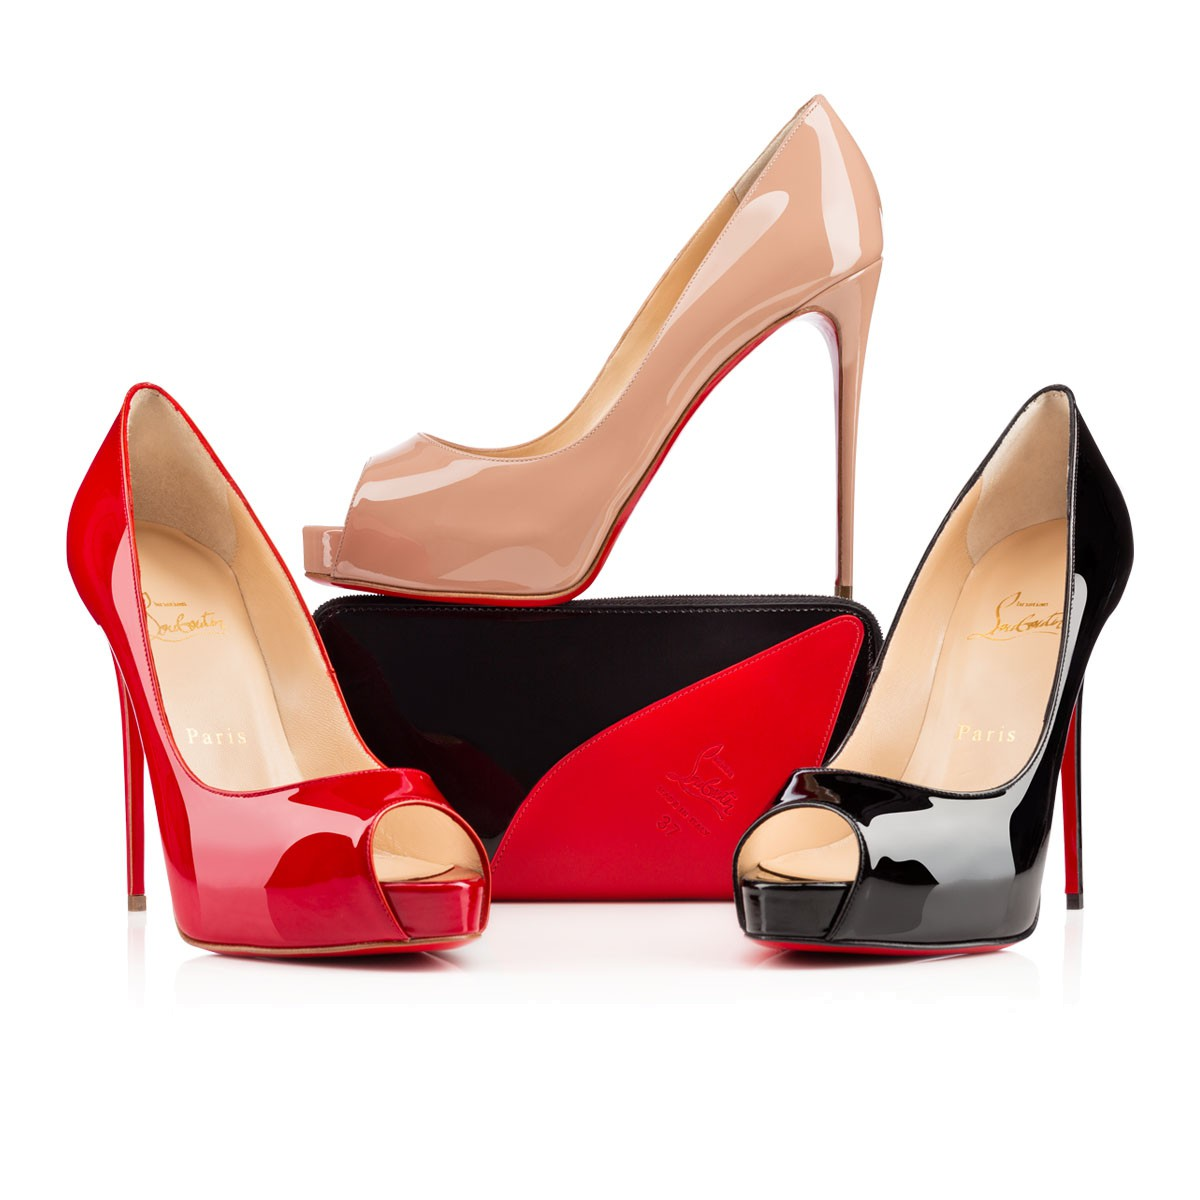 christian louboutin shoes and prices